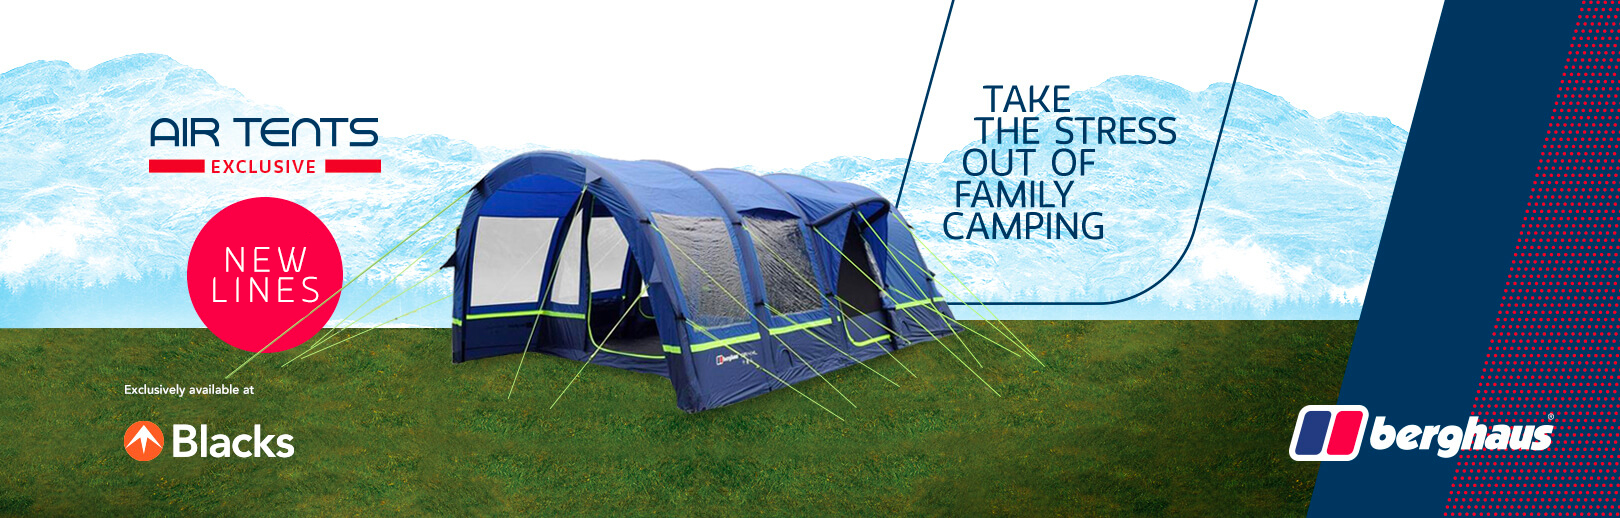 Take The Stress Out Of Family Camping